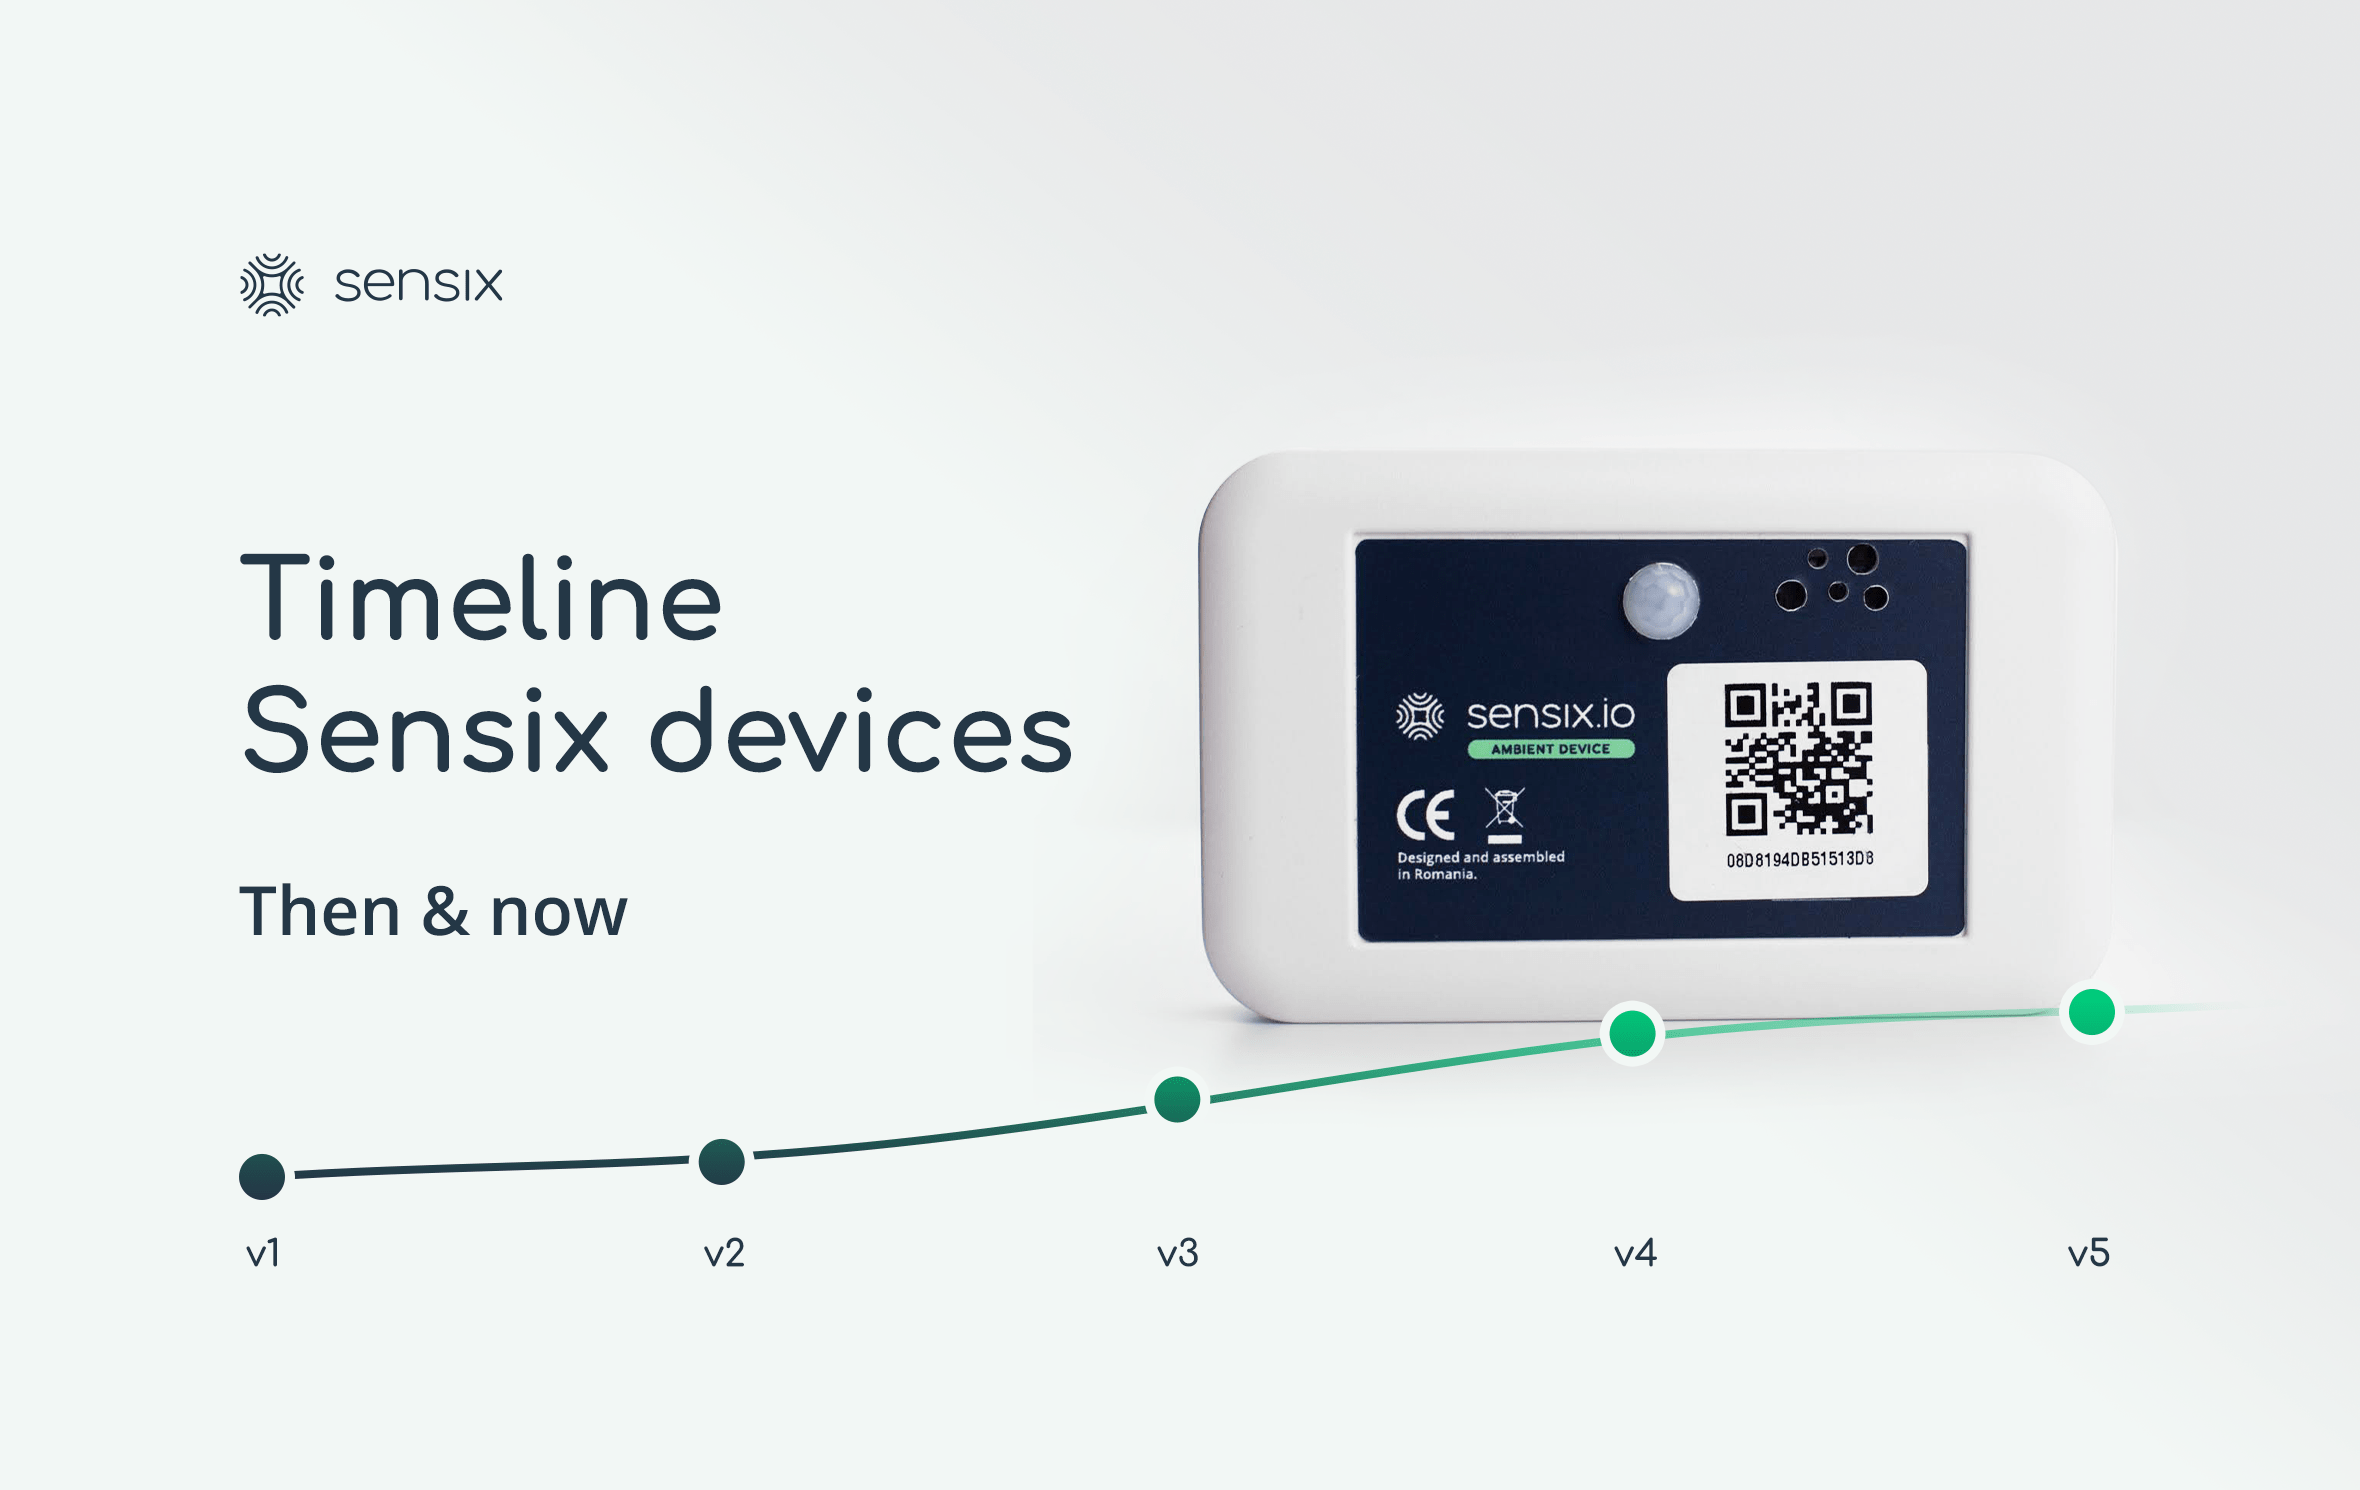 Sensix Devices Timeline - Then & Now